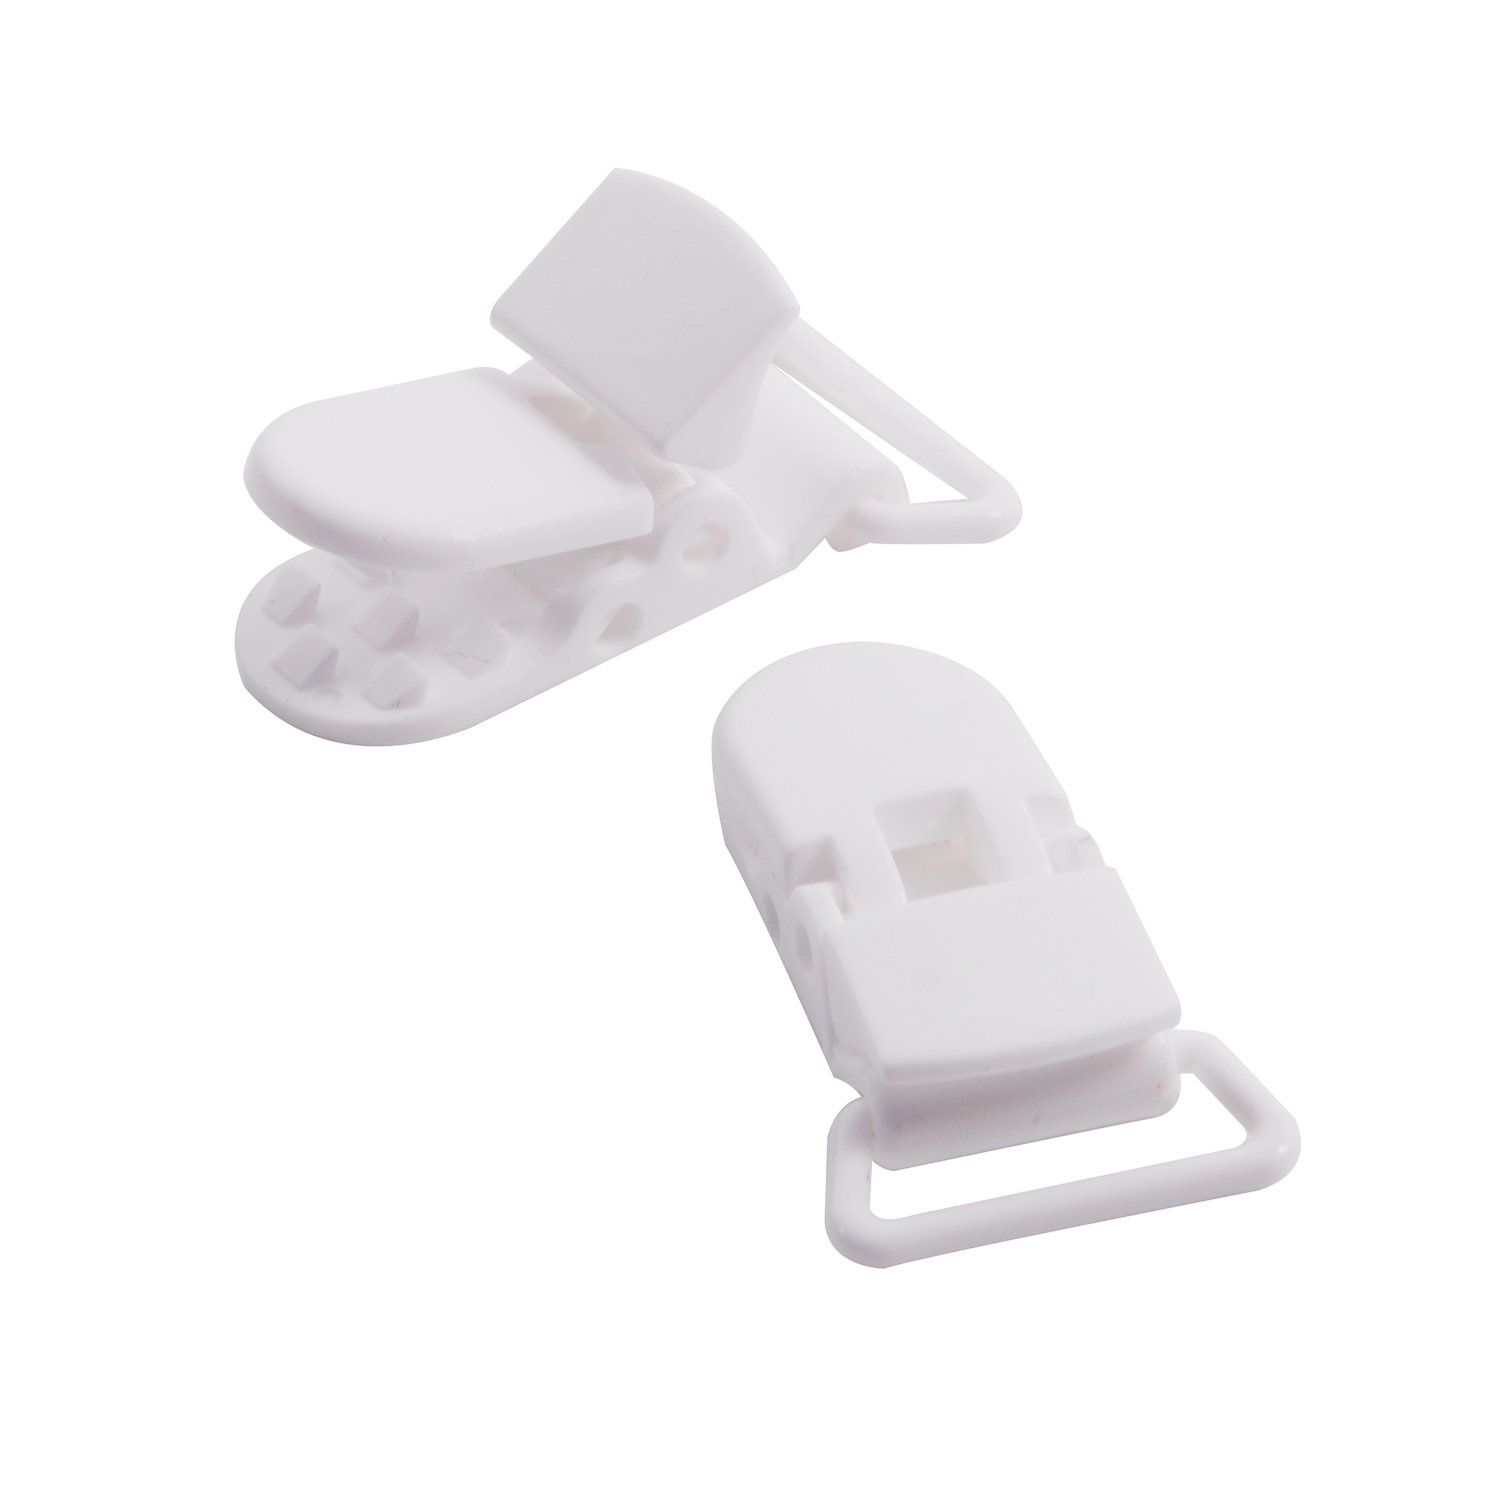 Bib Suspender Clips Binky Toy Holder Dummy White Oldhill 20-Pack Plastic Pacifier Clips for DIY Pacifier